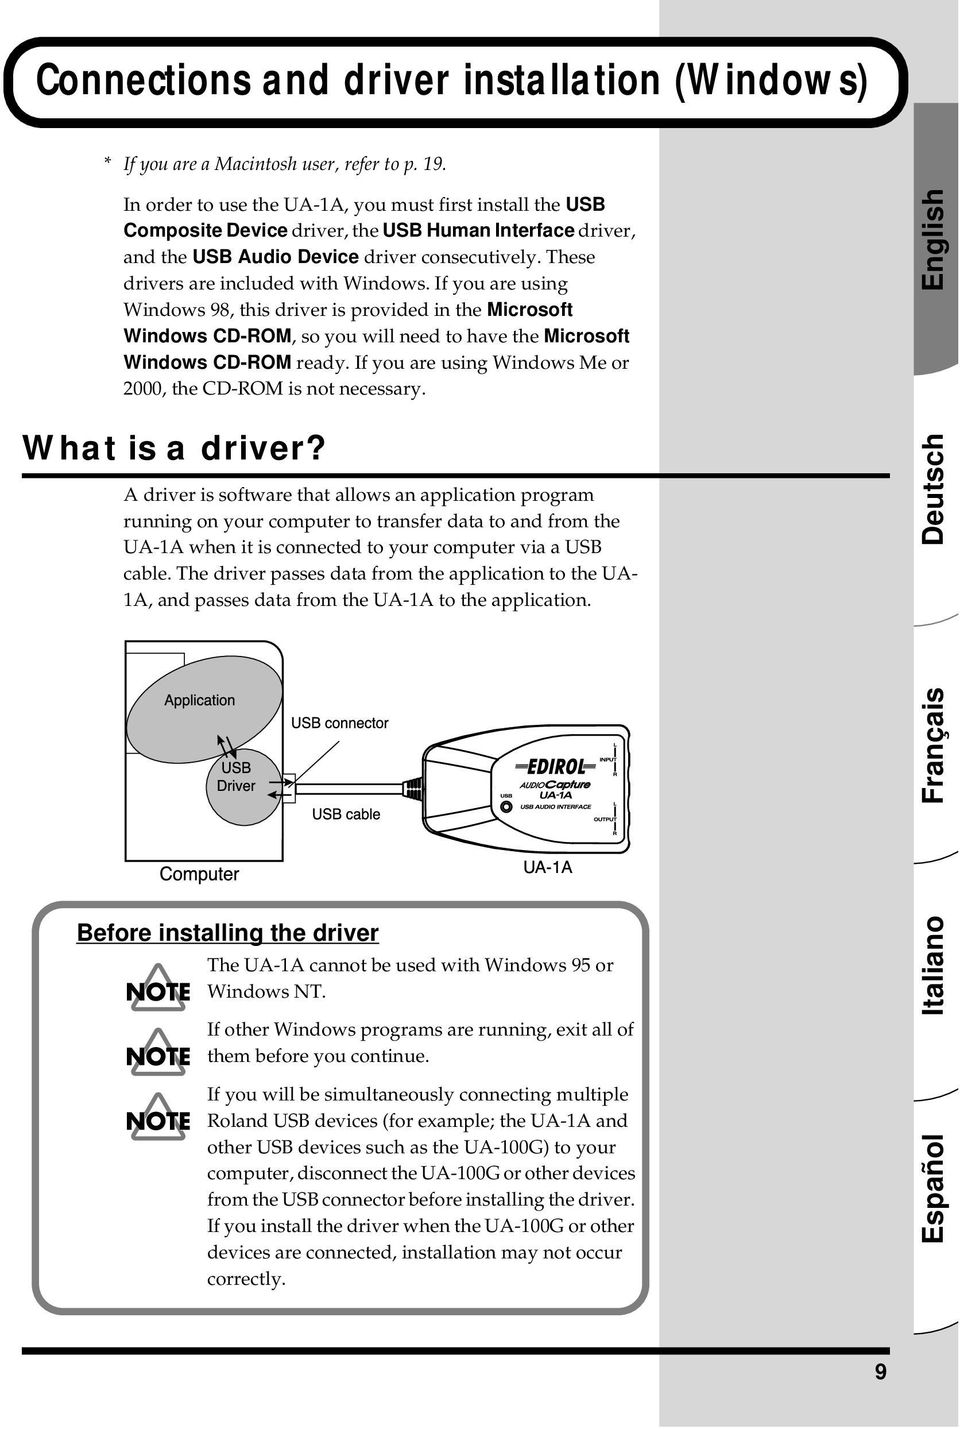 These drivers are included with Windows. If you are using Windows 98, this driver is provided in the Microsoft Windows CD-ROM, so you will need to have the Microsoft Windows CD-ROM ready.